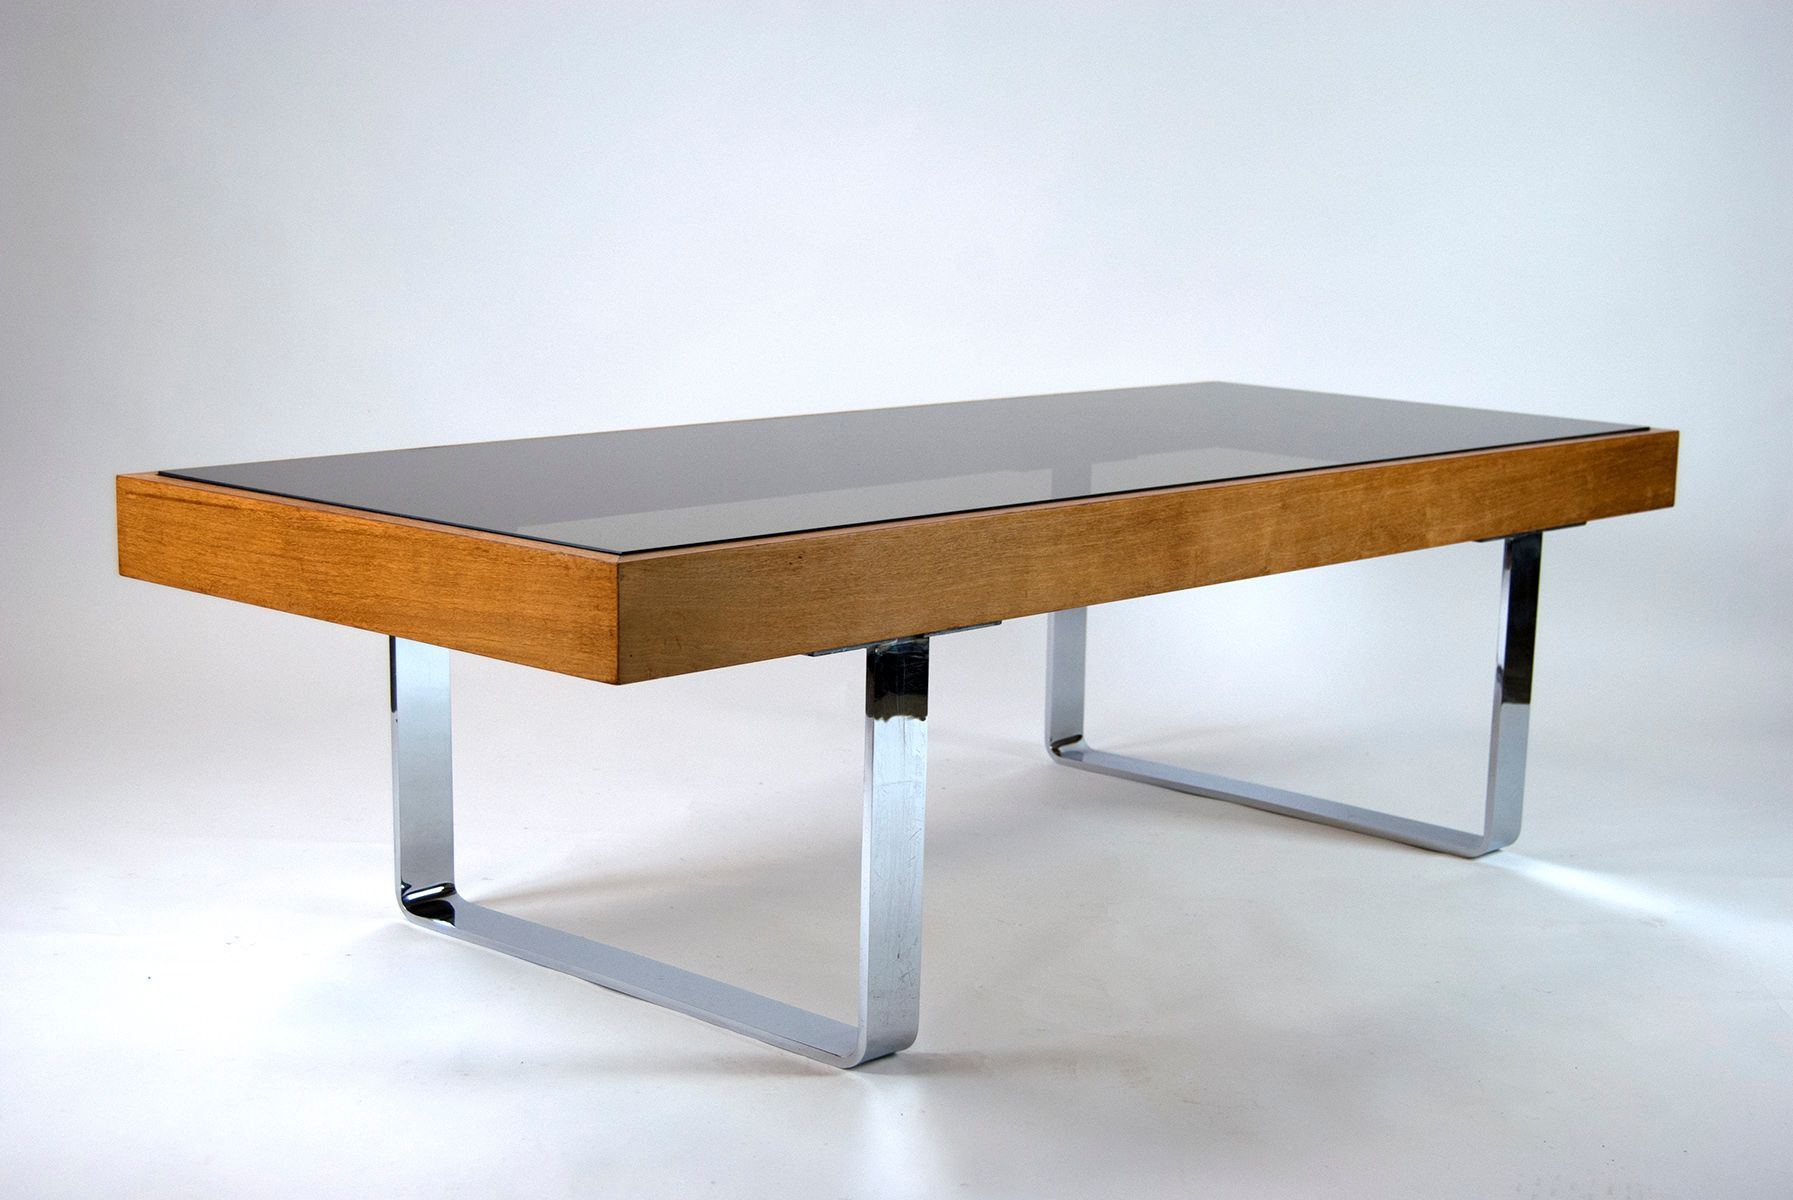 Vintage Küchenmöbel Model 3080 Coffee Table From Ilse Möbel 1960s